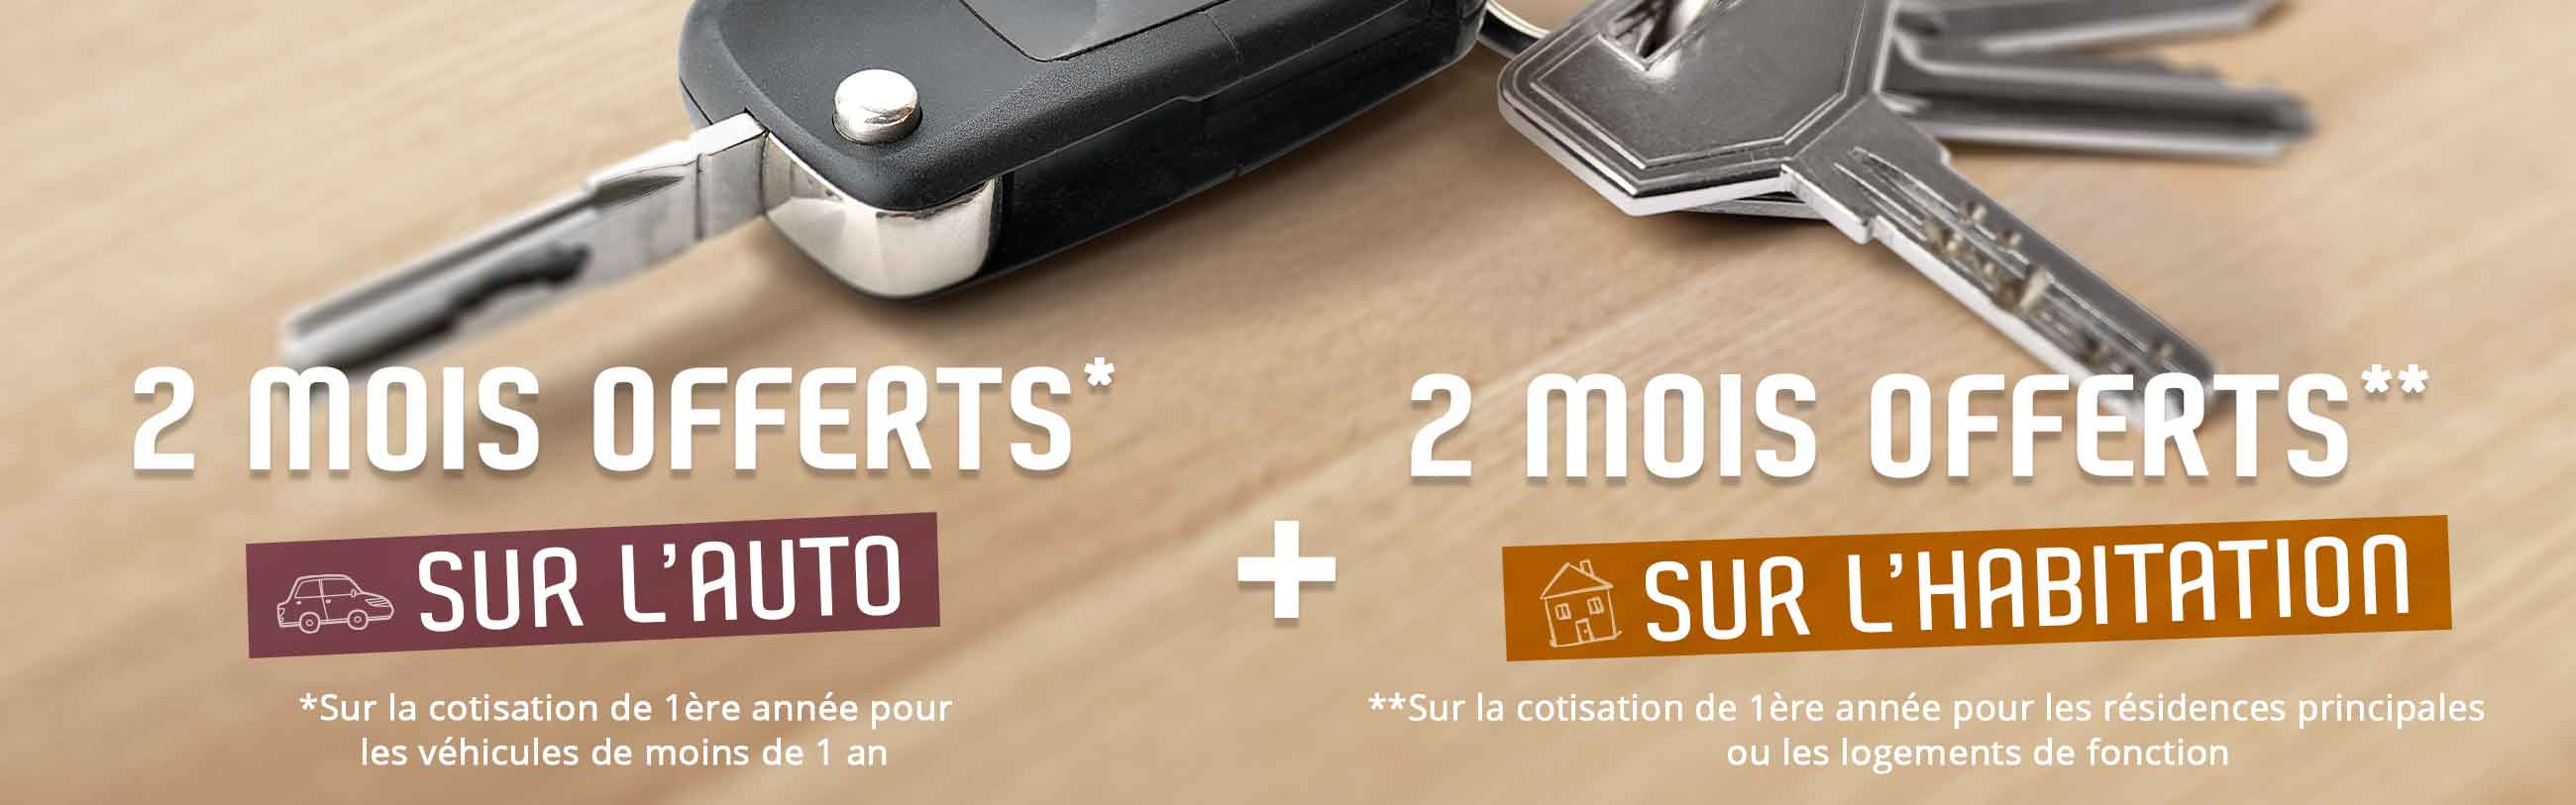 offre-multiequipements